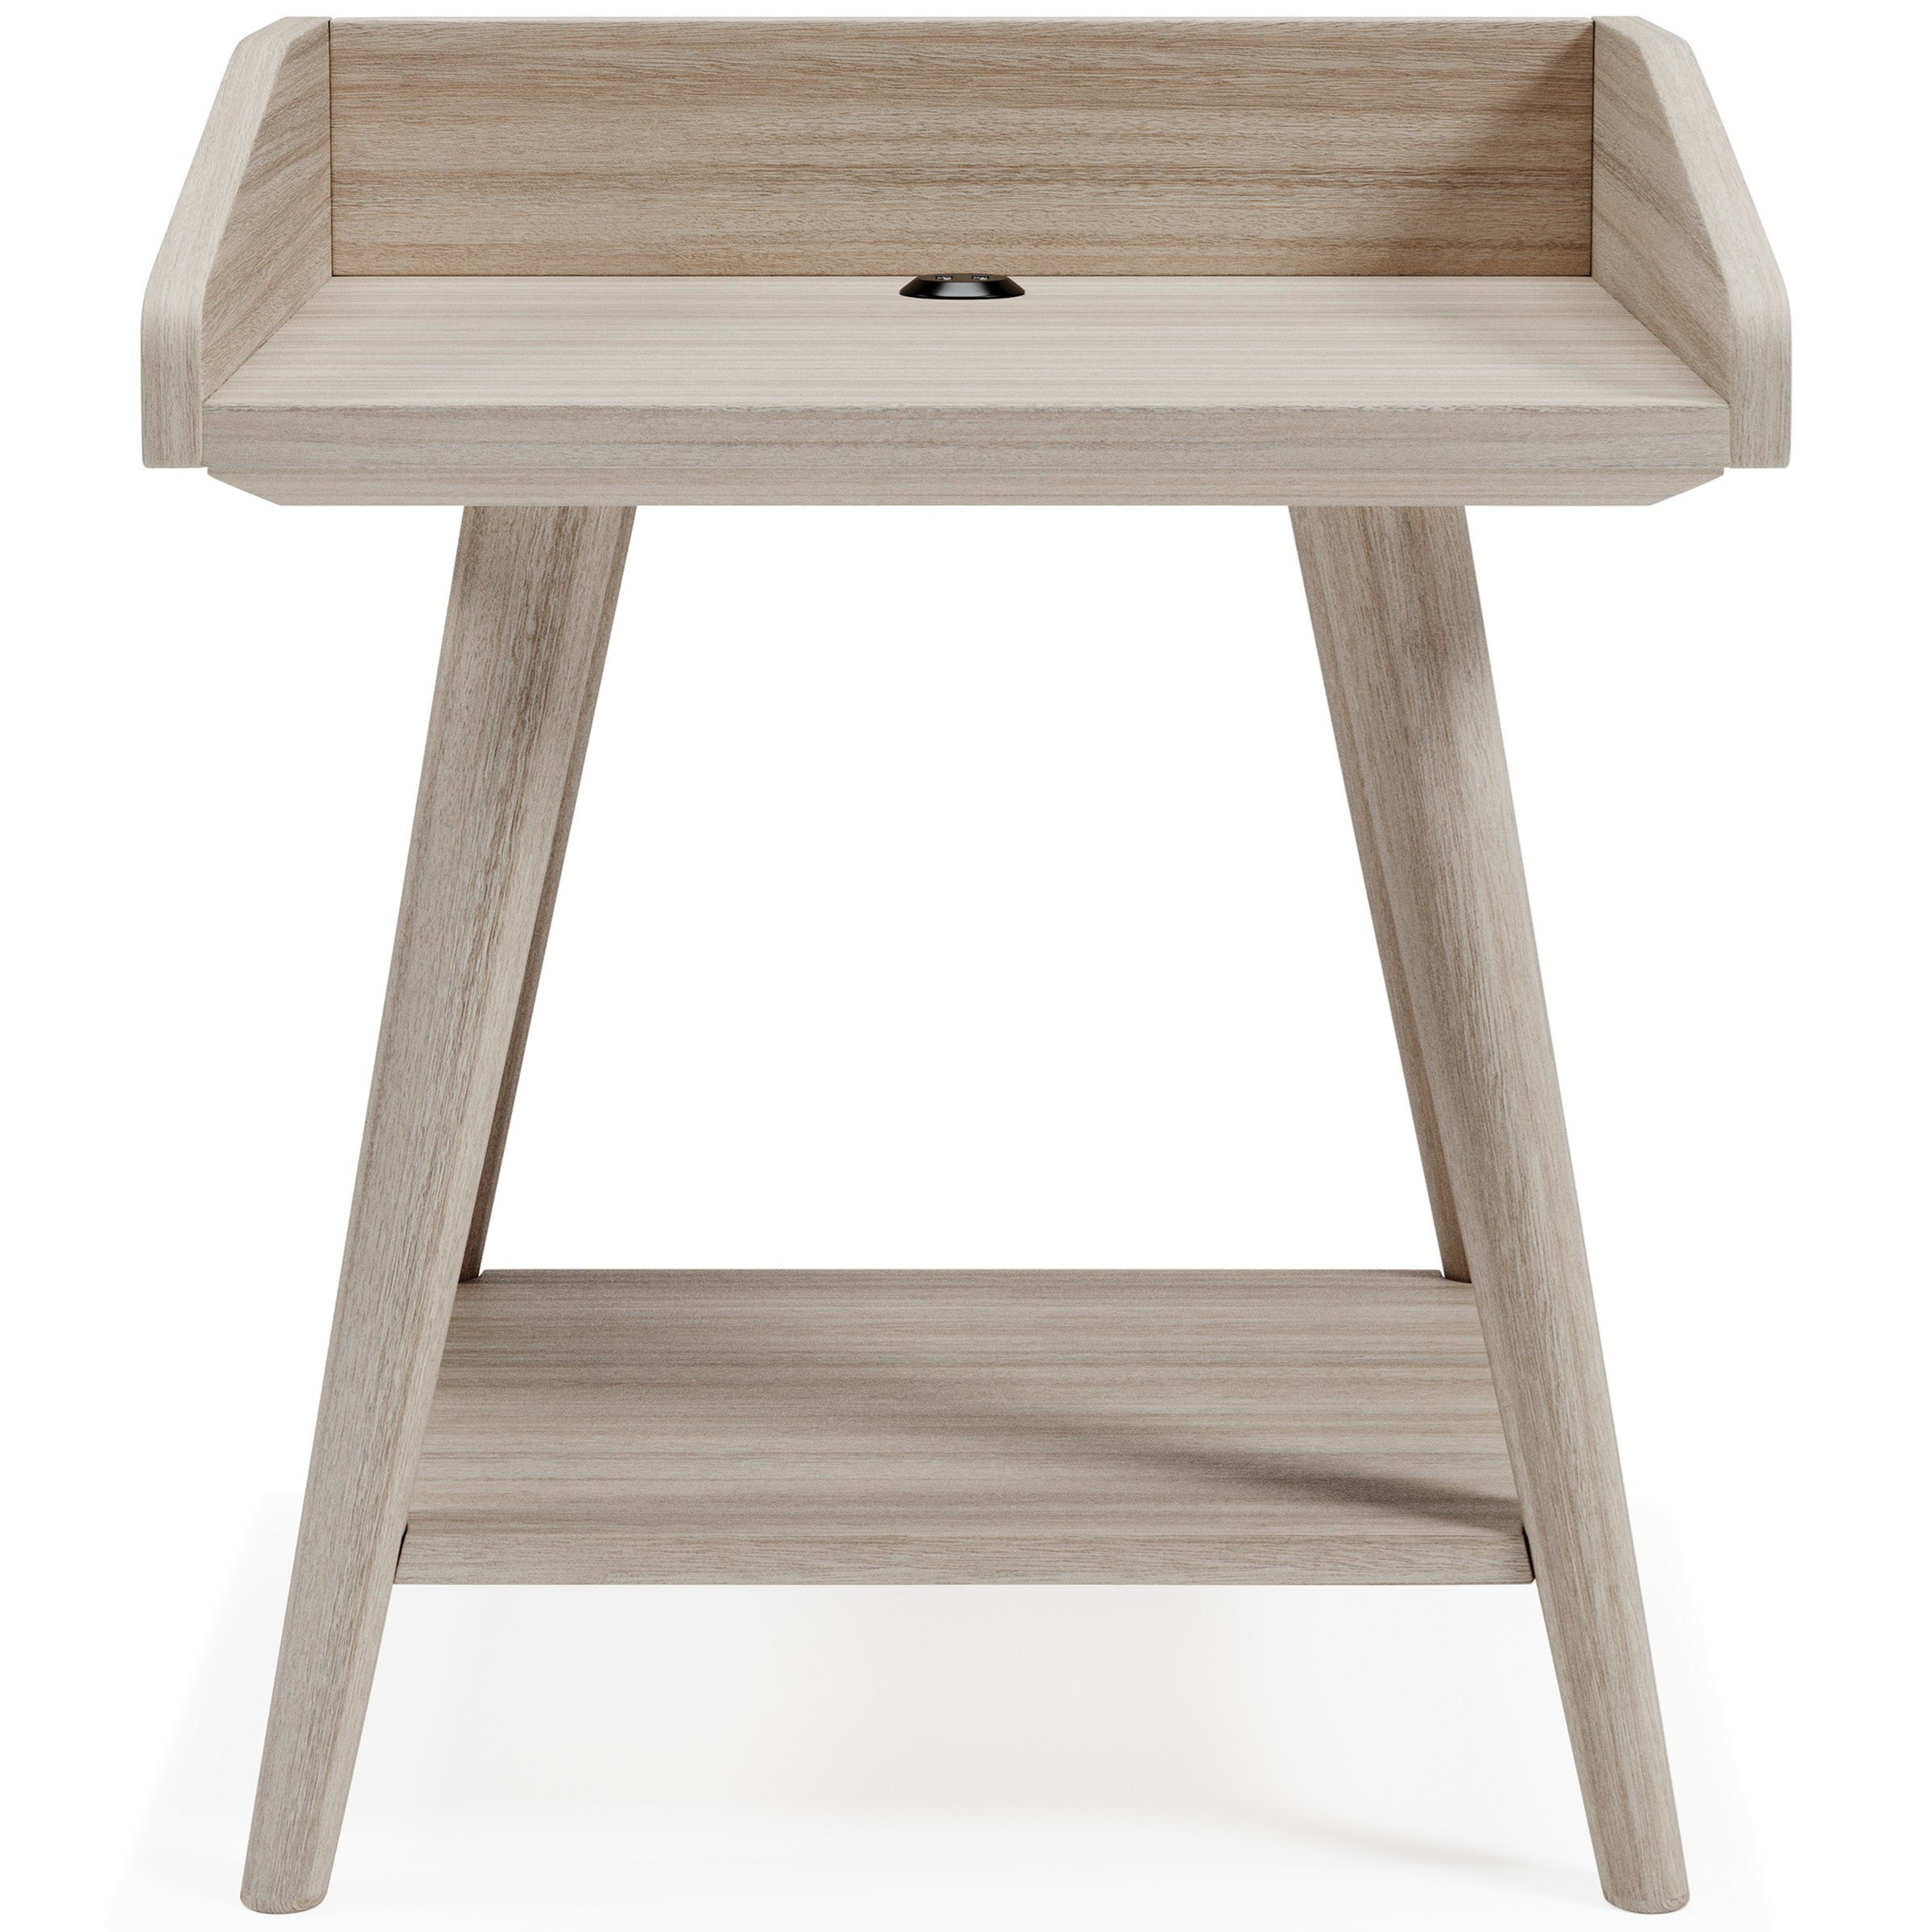 Blariden Accent Table by Signature Design by Ashley at Rife's Home Furniture